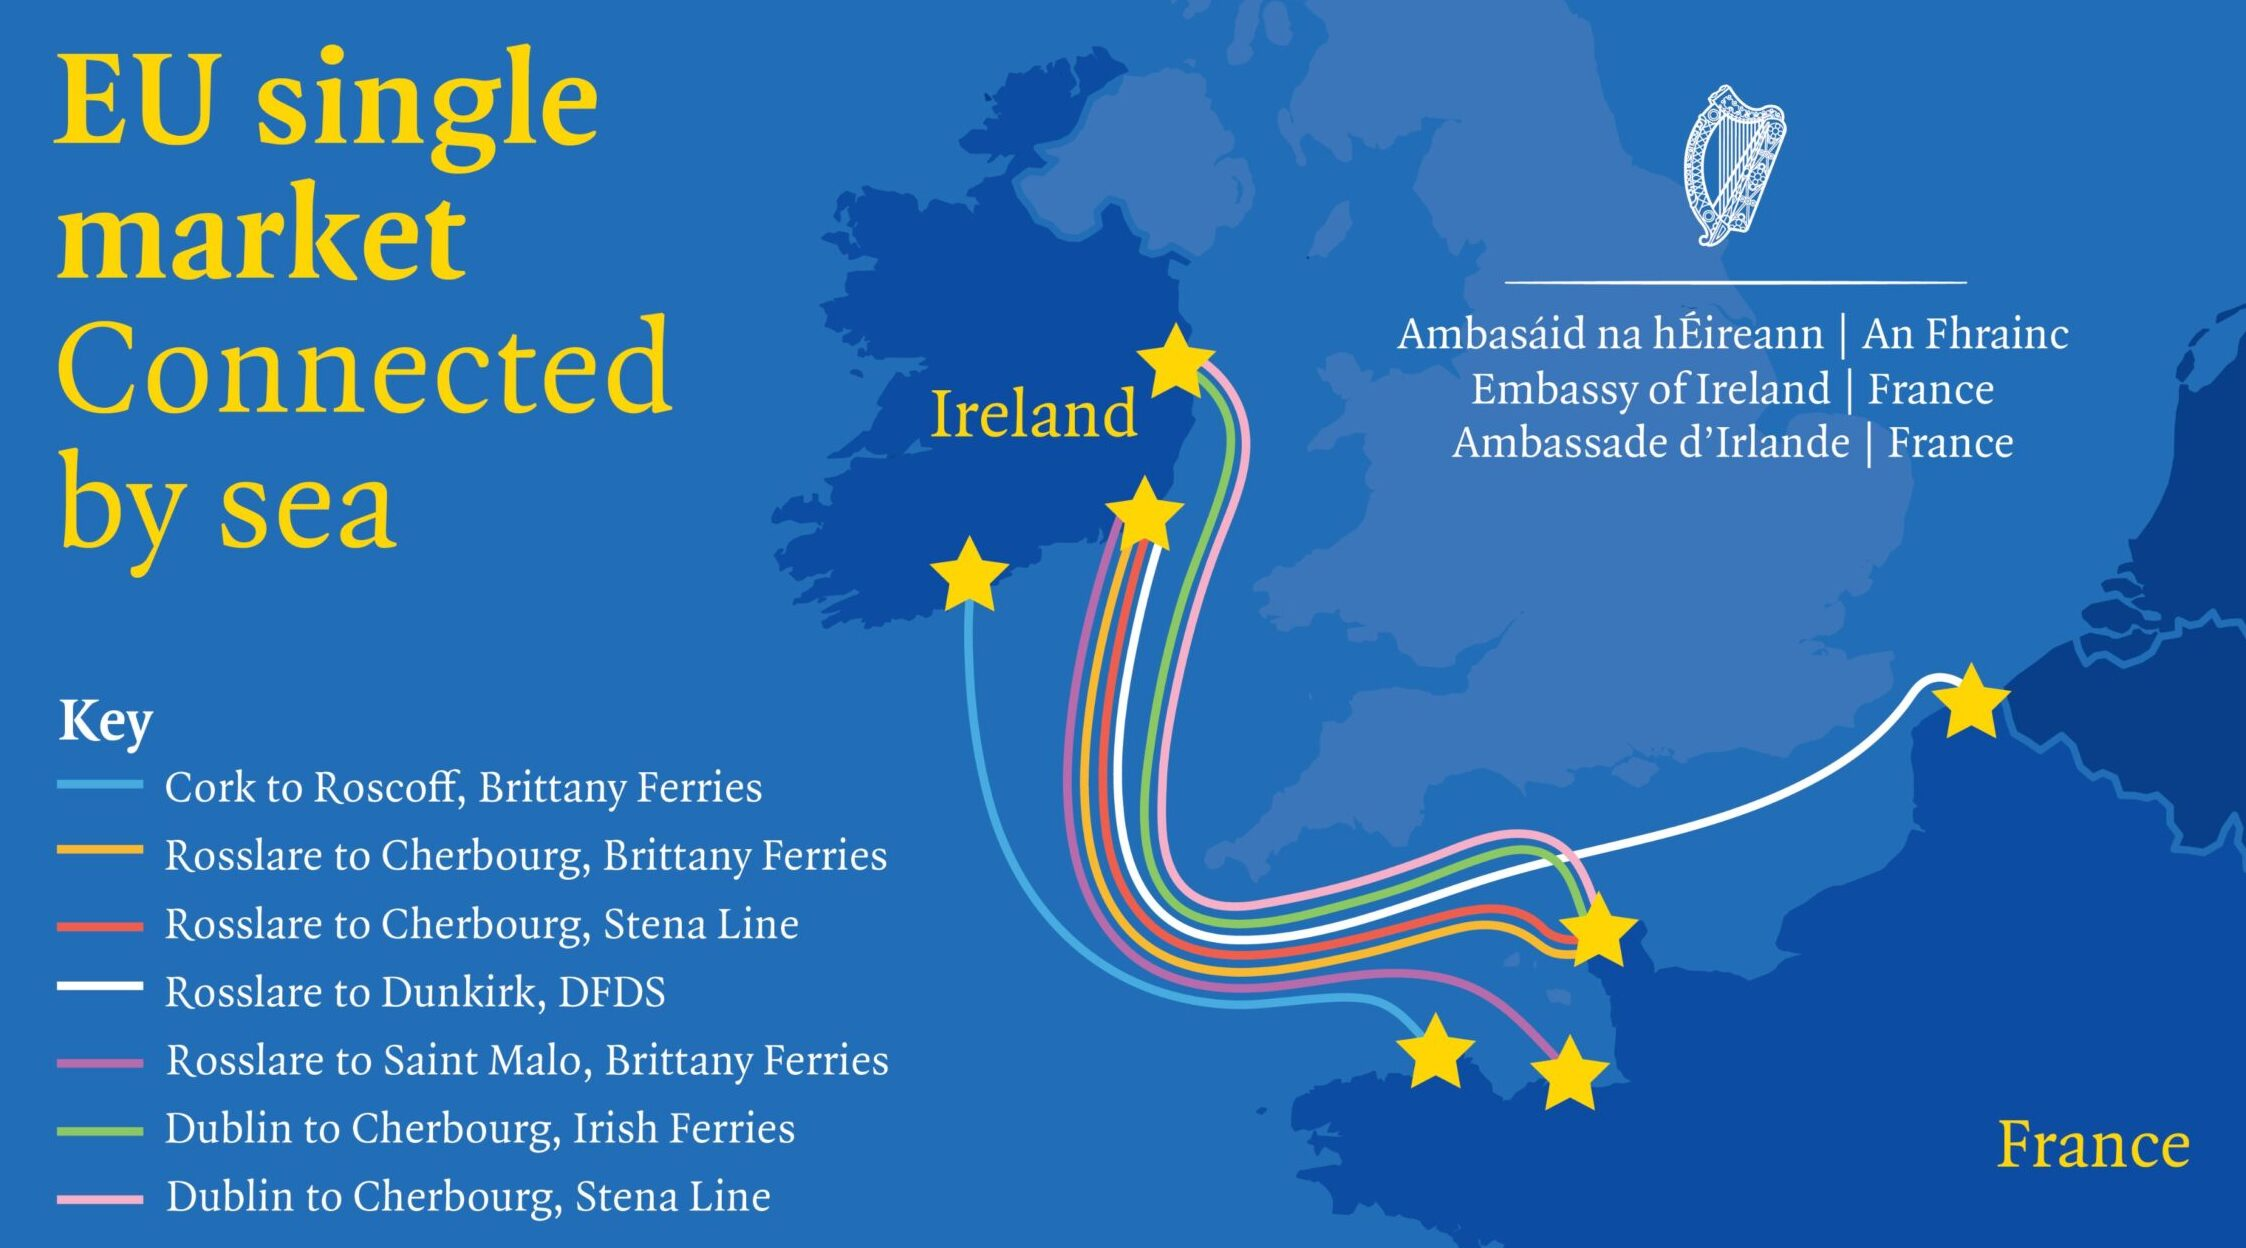 Graphic of France/Ireland Ferry Routes